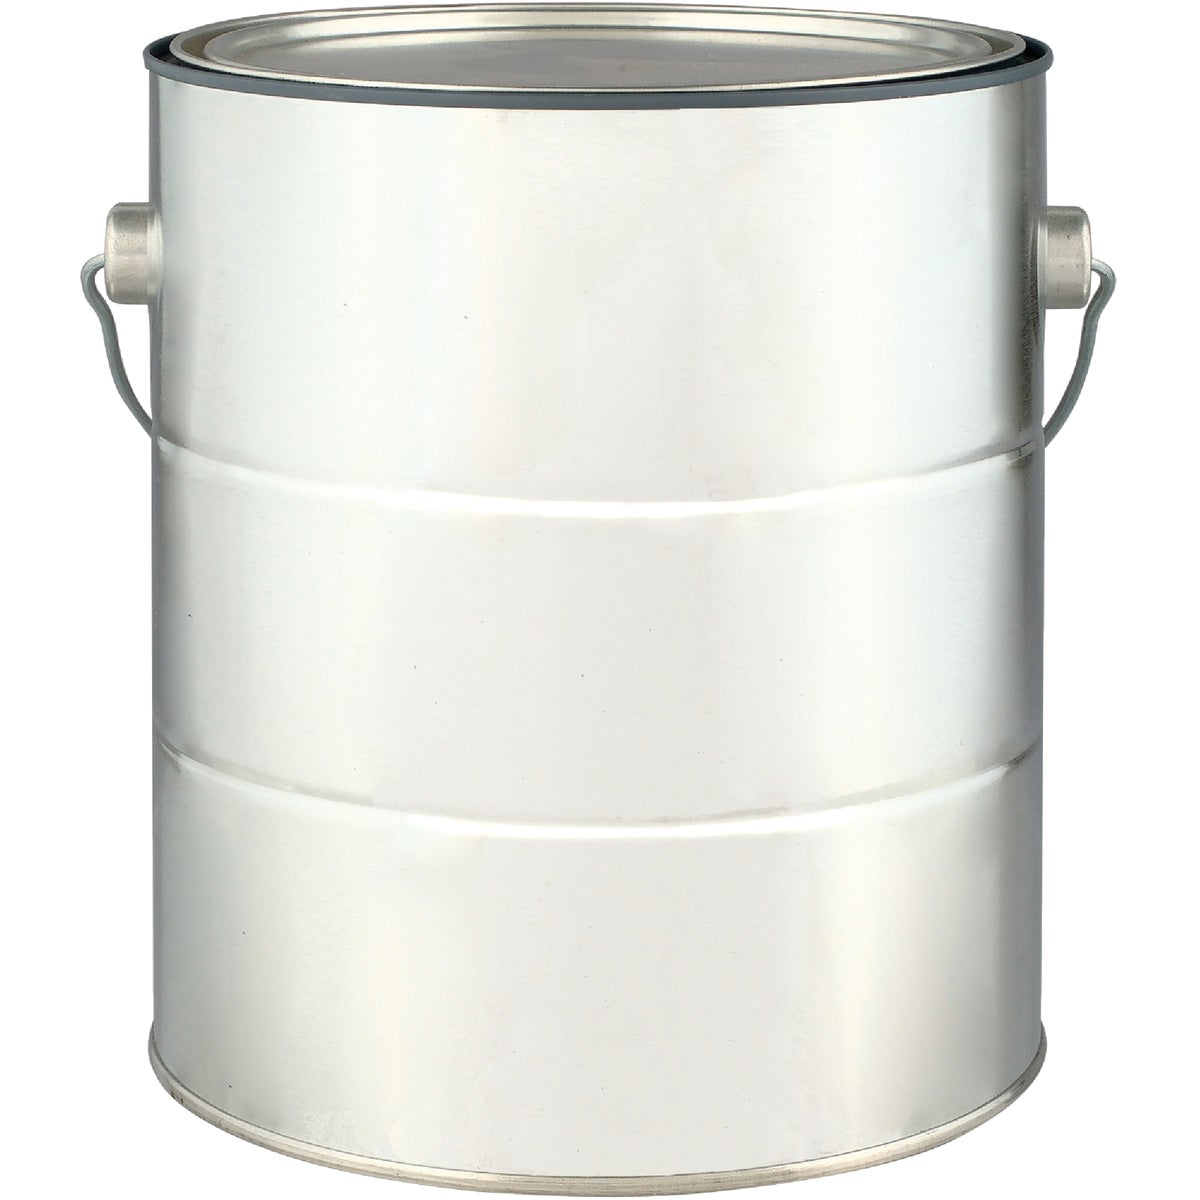 EMPTY 1 GALLON PAINT CAN